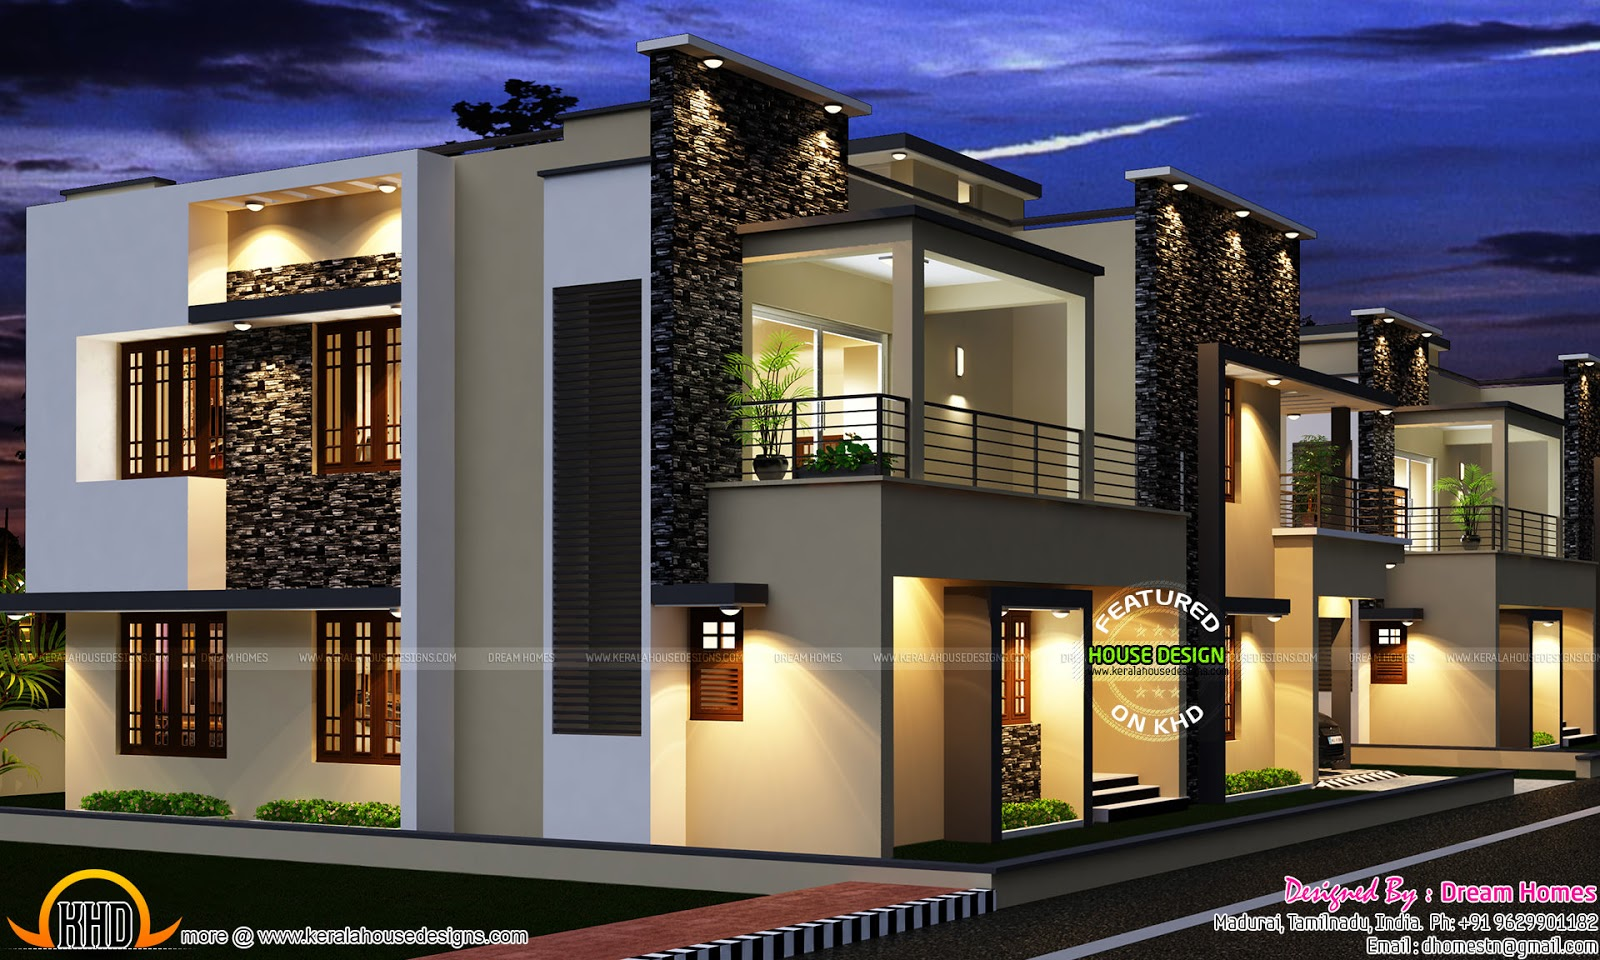 Tamilnadu villa plan kerala home design and floor plans for Tamilnadu house designs photos